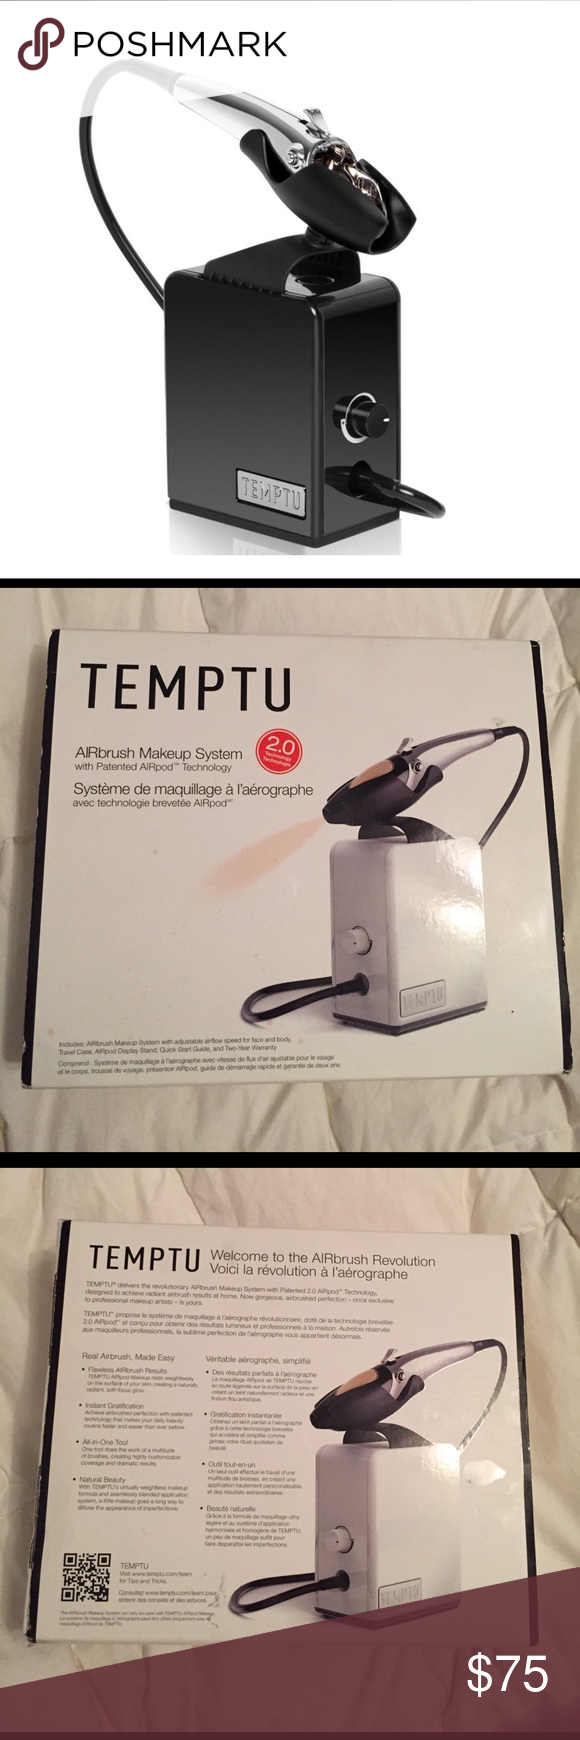 Temptu Airbrush Makeup System 2.0 New in box Temptu